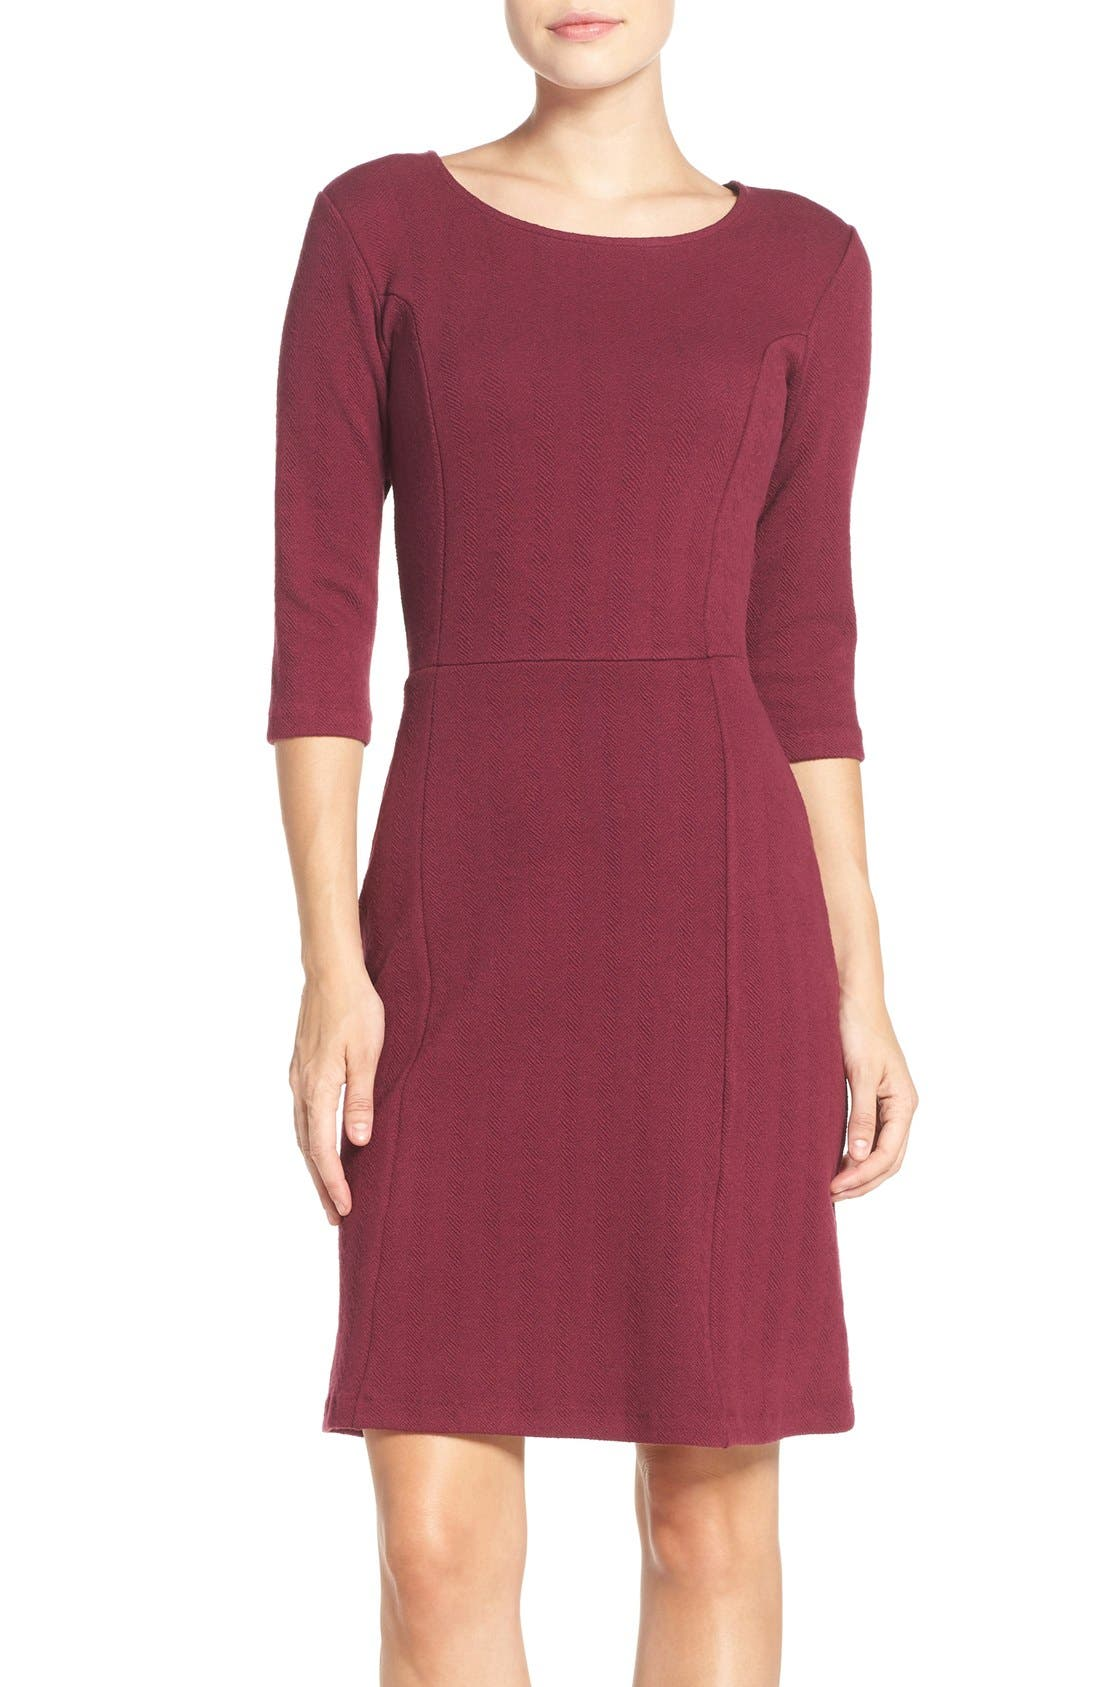 Leota 'Avery' Jacquard Knit Sheath Dress